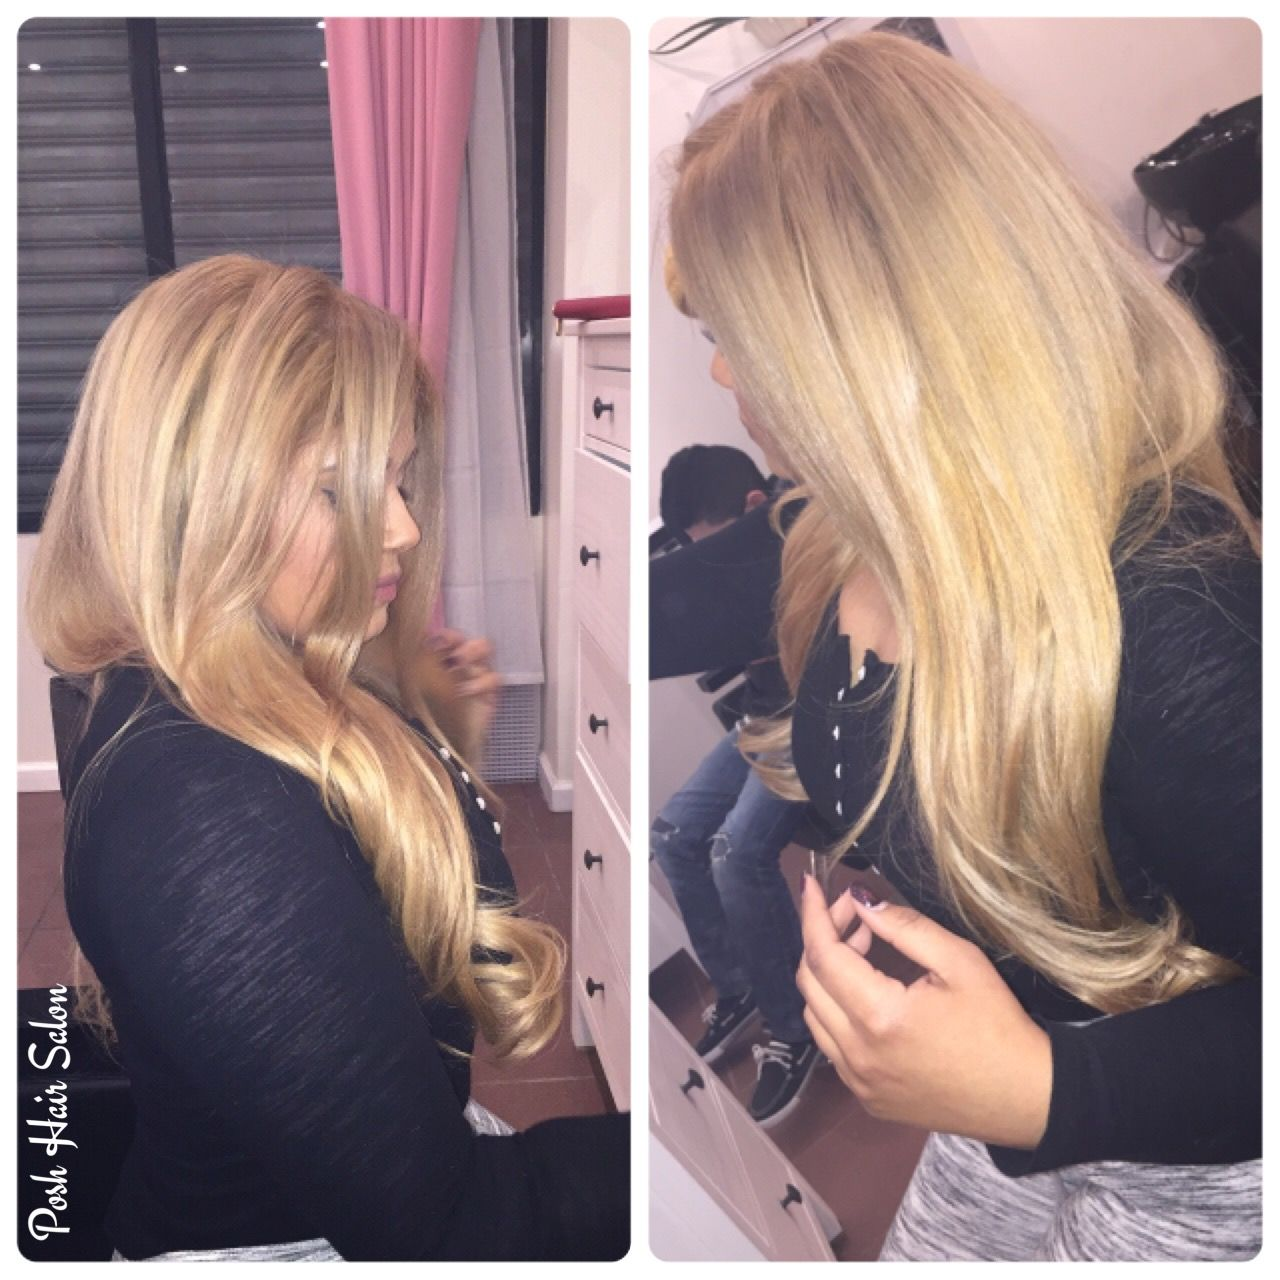 Blonde haircolor at Posh